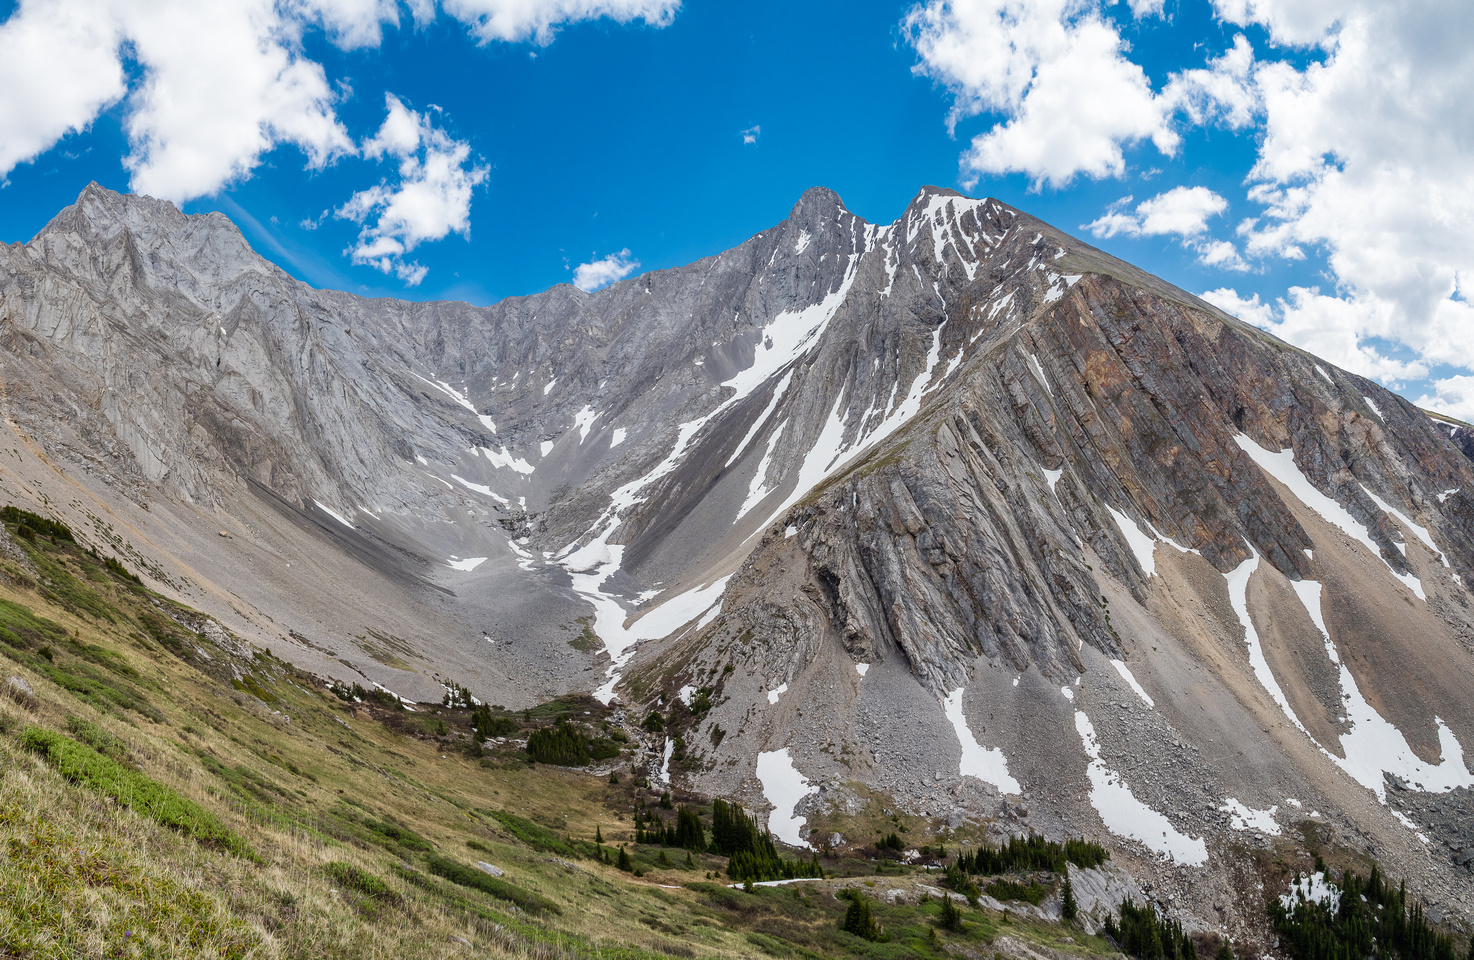 The lovely upper Grizzly Creek Valley with Potts at left and Evan Thomas at right.